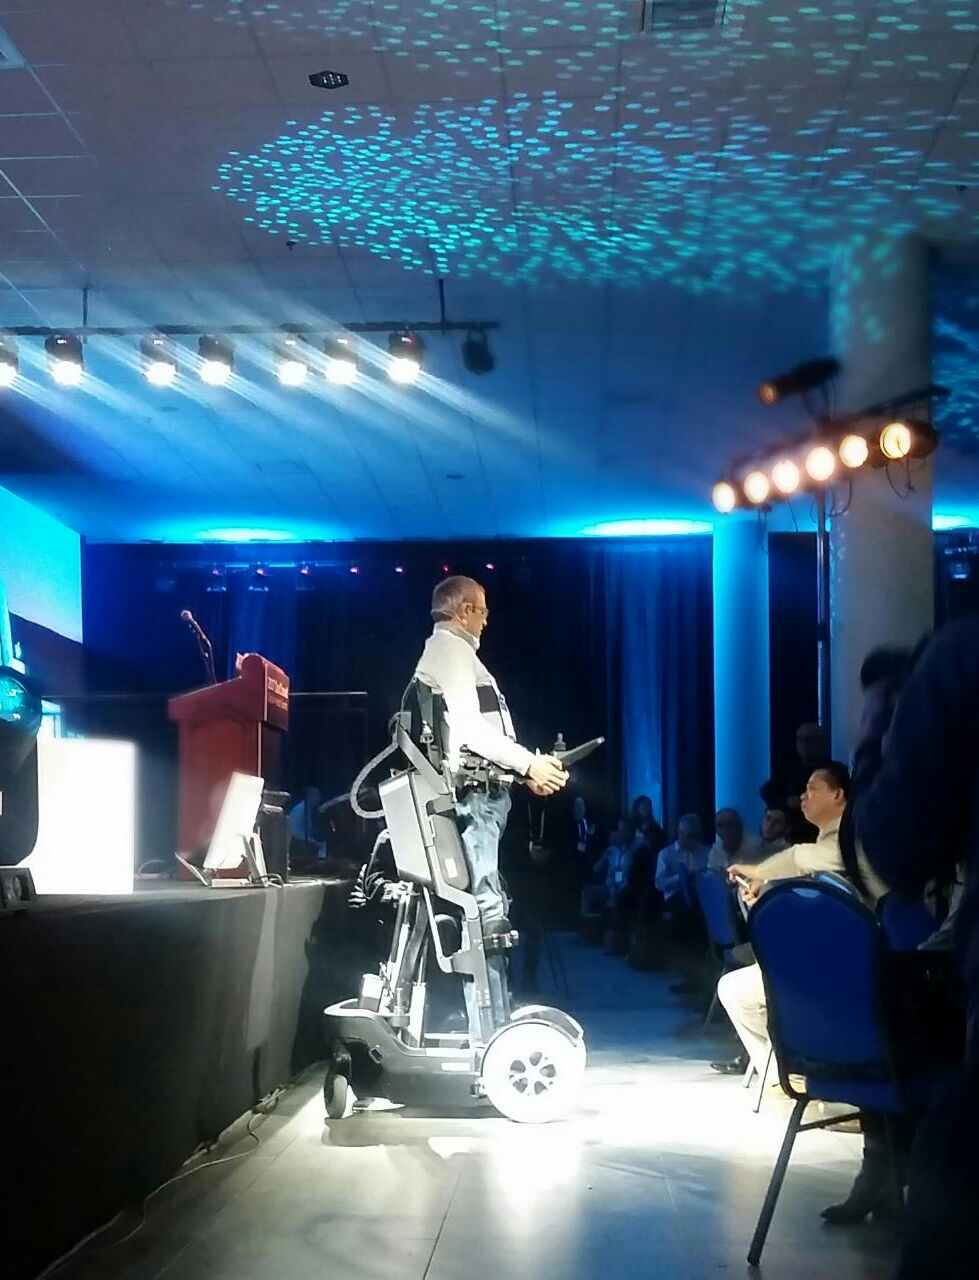 UPnRIDE's latest tech at the OurCrowd Summit